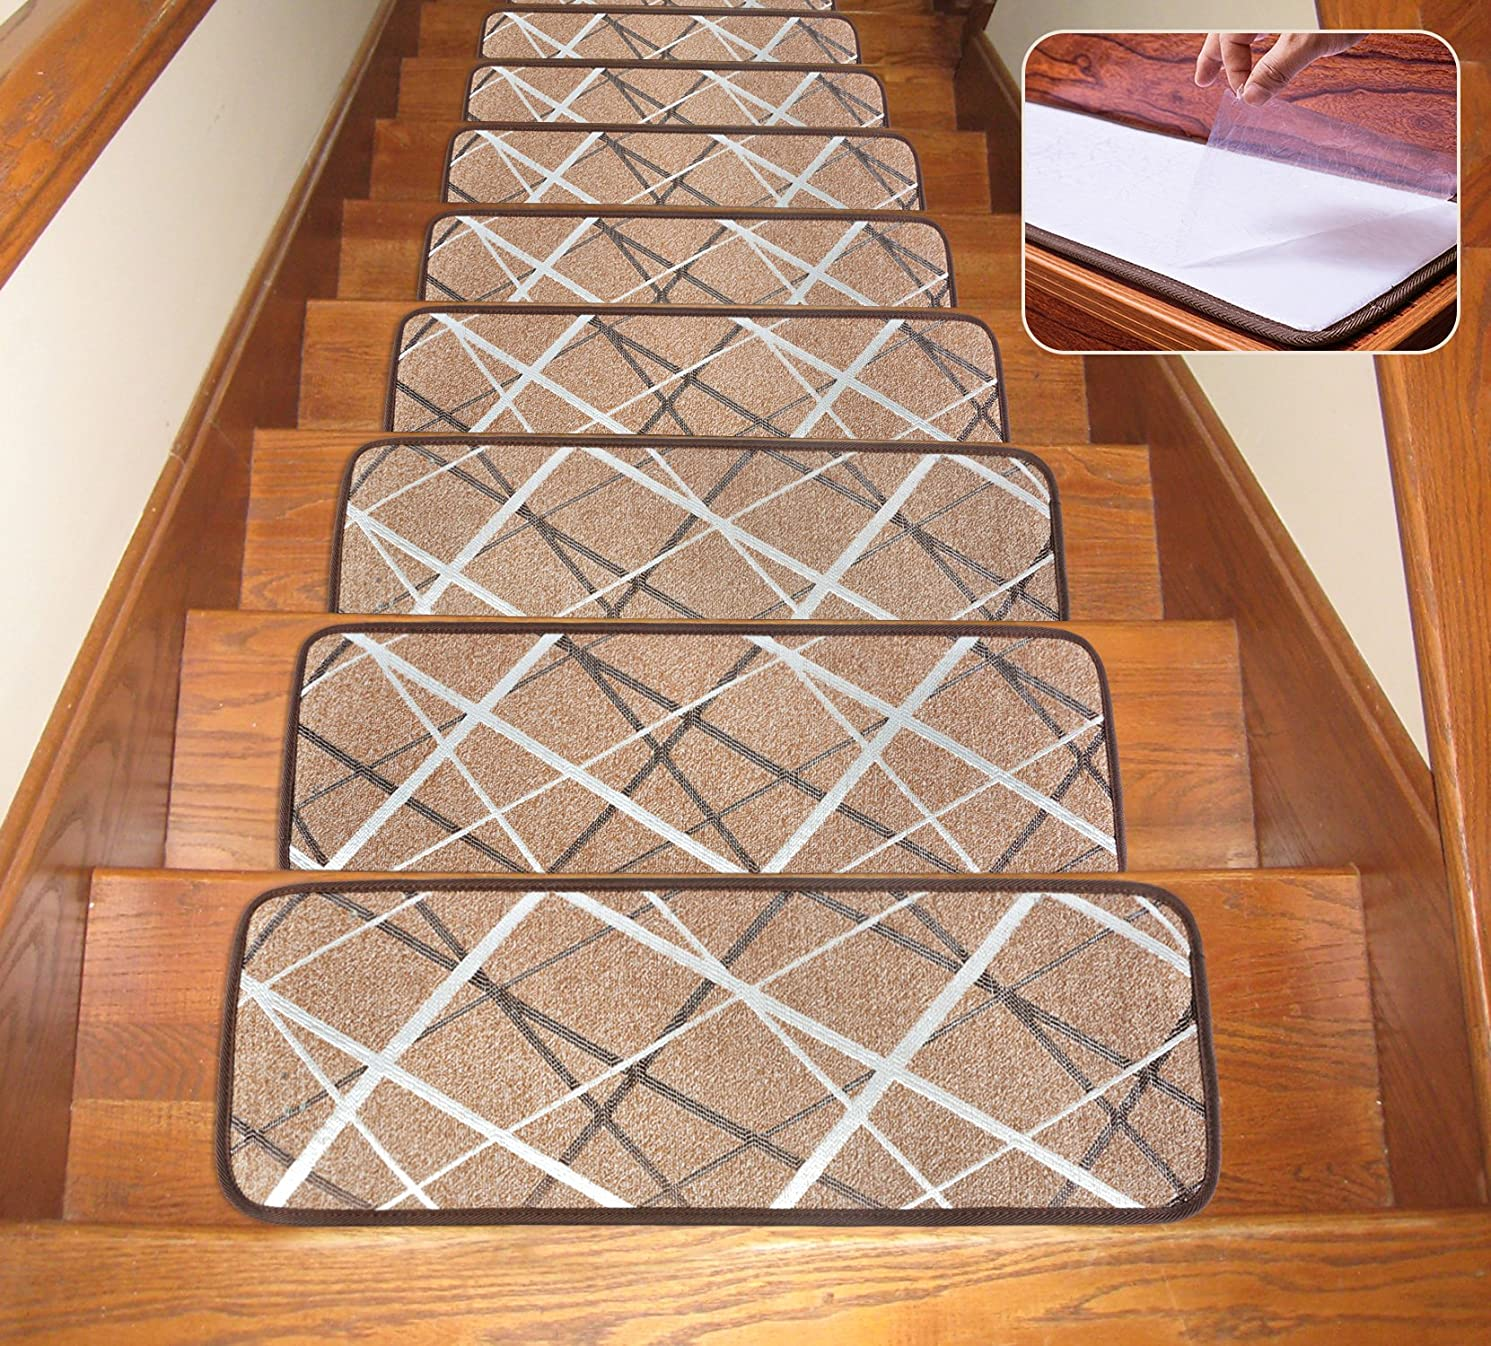 Seloom Non-Slip Washable Stair Treads Carpet with Skid Resistant Rubber Backing Specialized for Indoor Wooden Steps, Brown